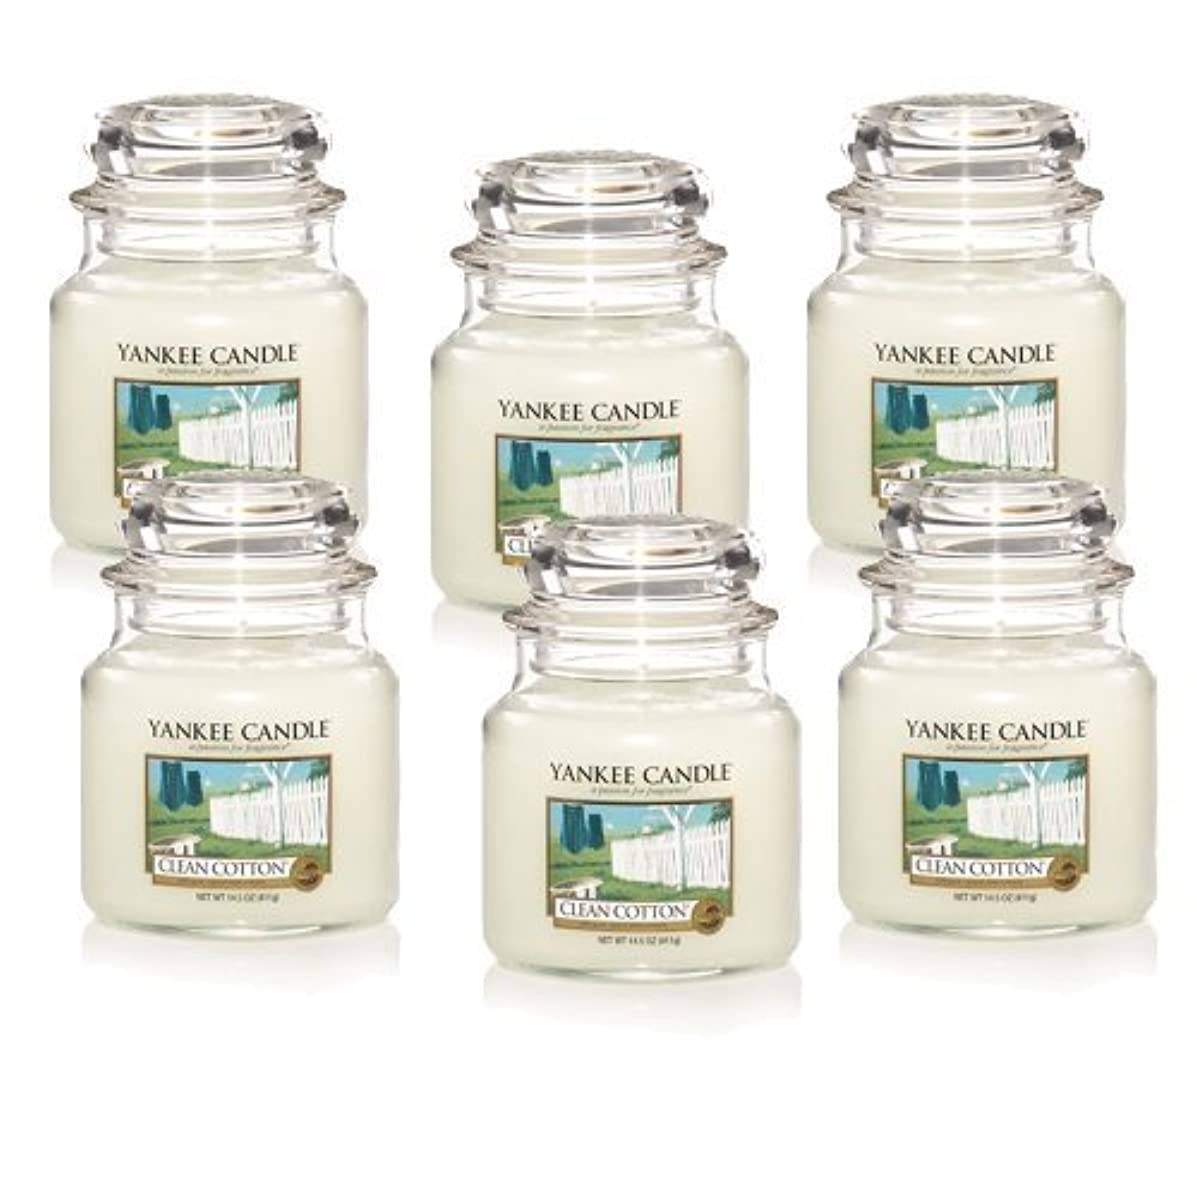 湖戦艦フルーツ野菜Yankee Candle Company Clean Cotton 14.5-Ounce Jar Candle, Medium, Set of 6 by Amazon source [並行輸入品]